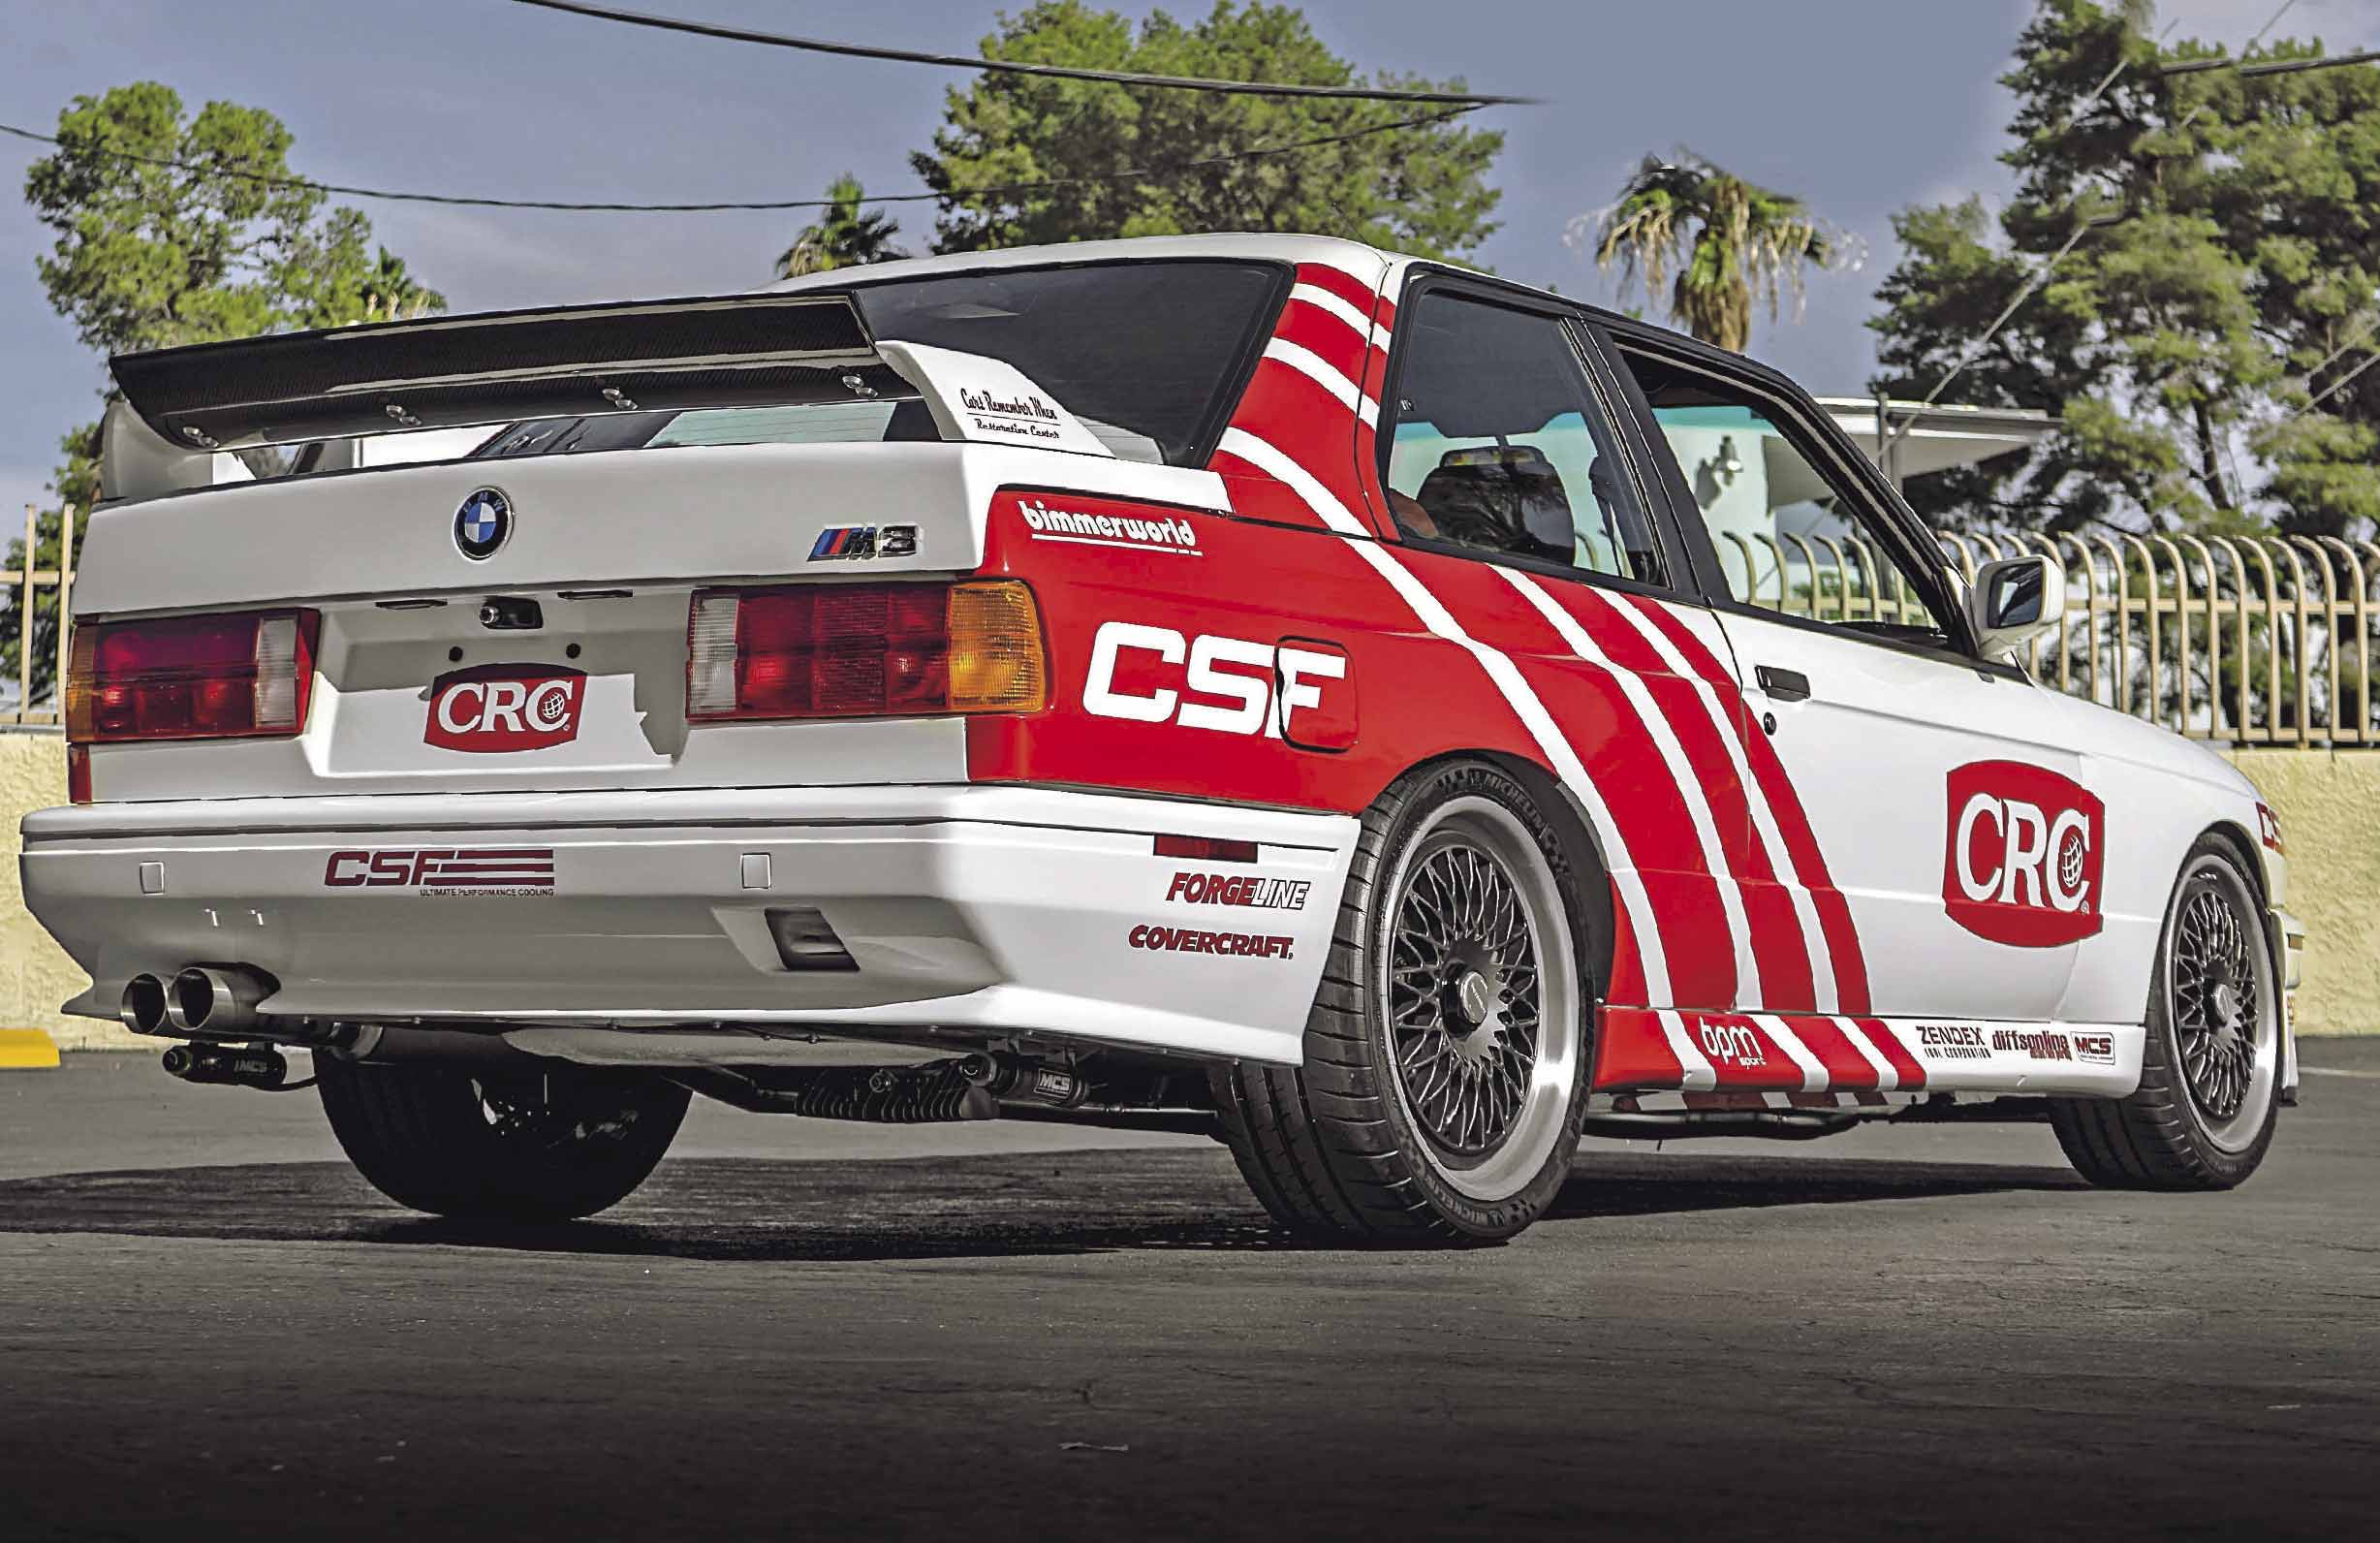 Twin-turbo S55-swapped BMW M3 E30 - Drive-My Blogs - Drive